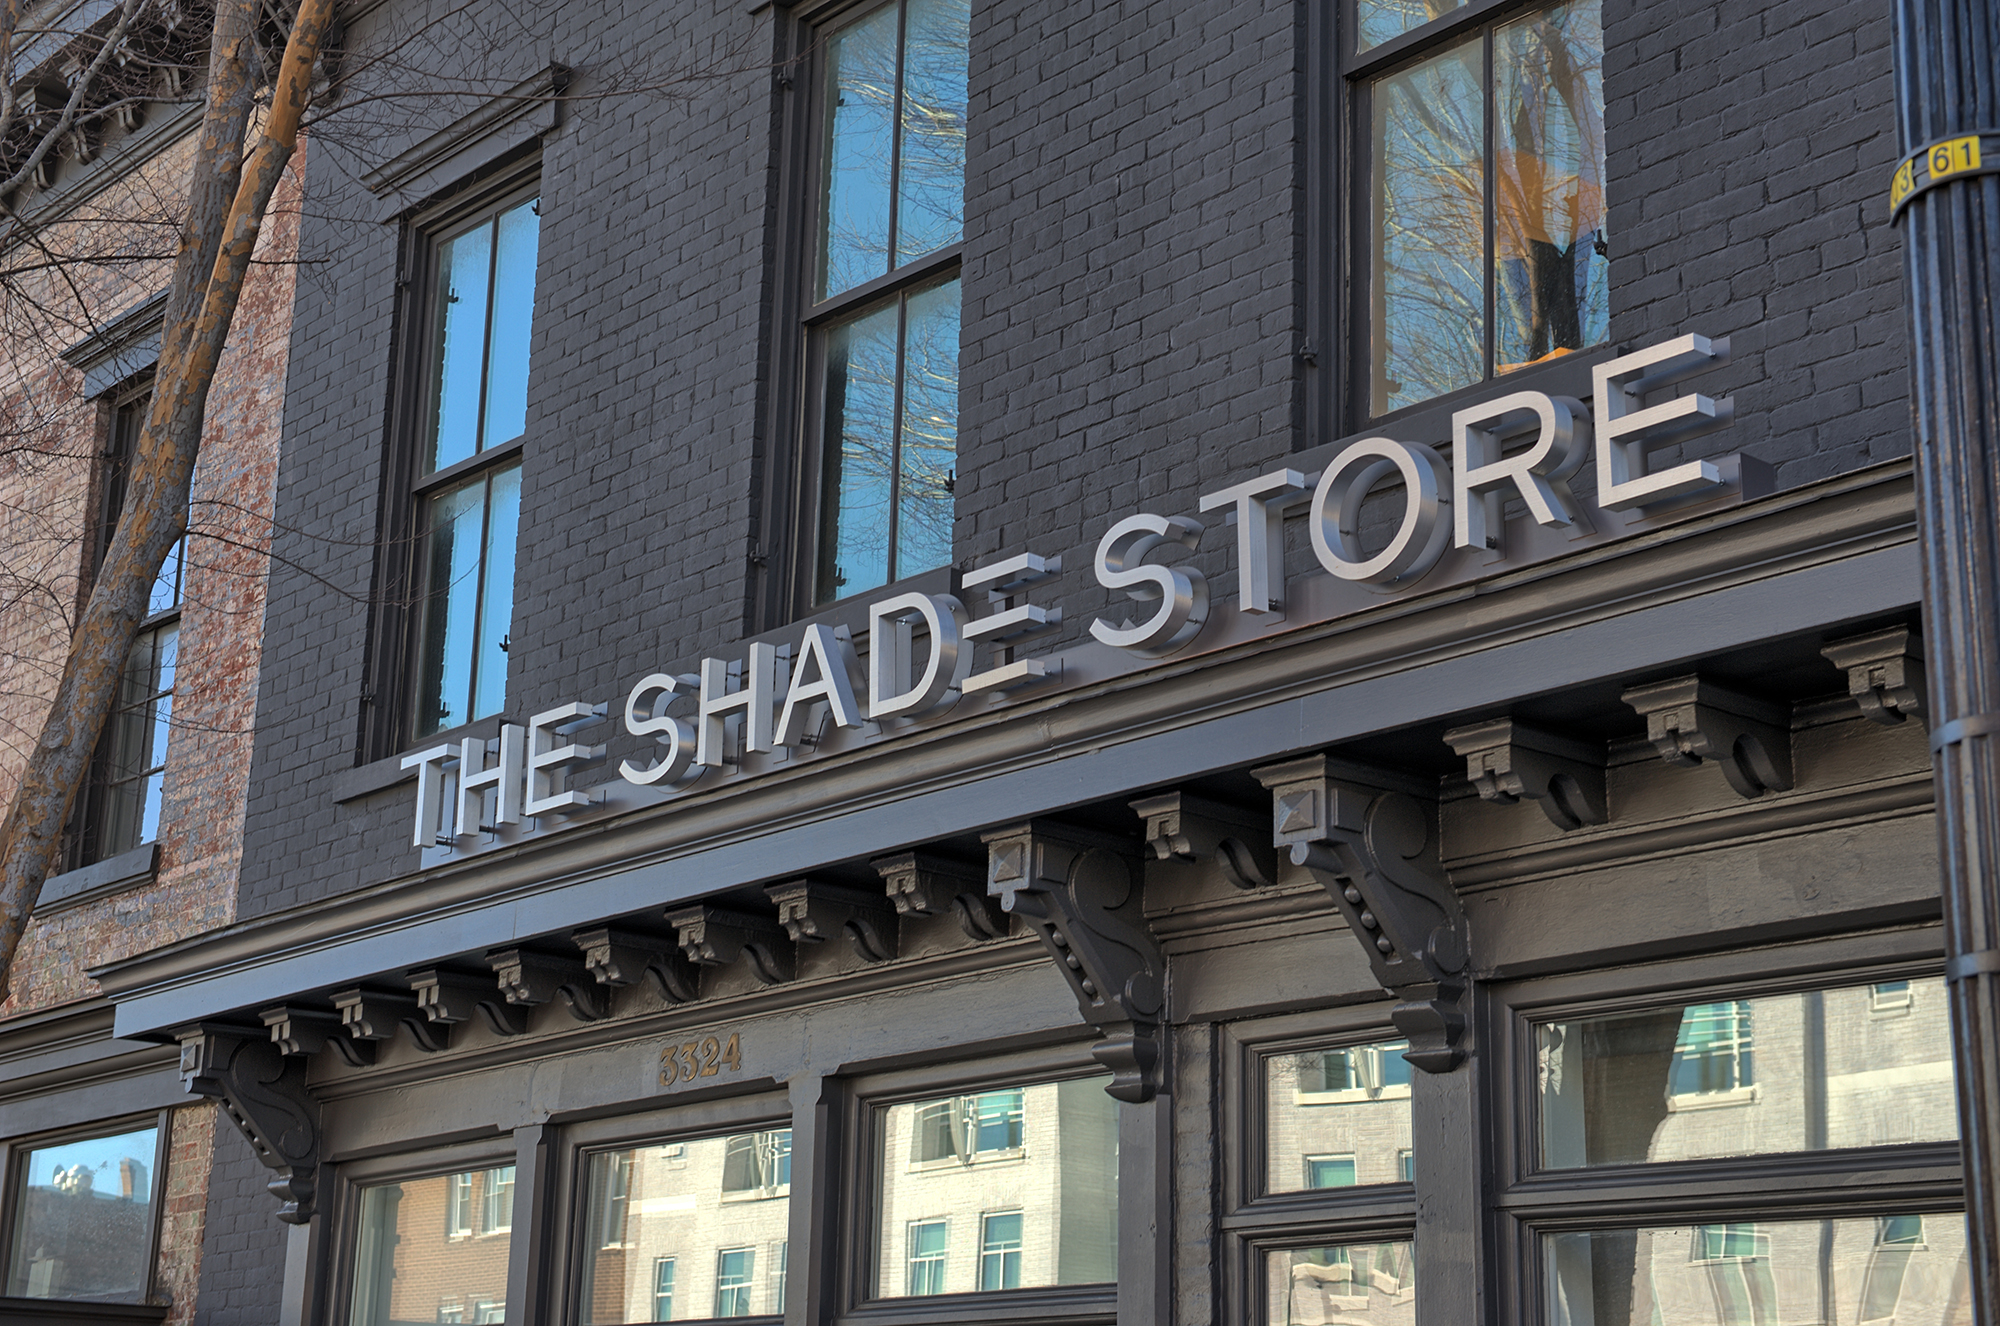 the shade store coupons near me in washington 8coupons. Black Bedroom Furniture Sets. Home Design Ideas